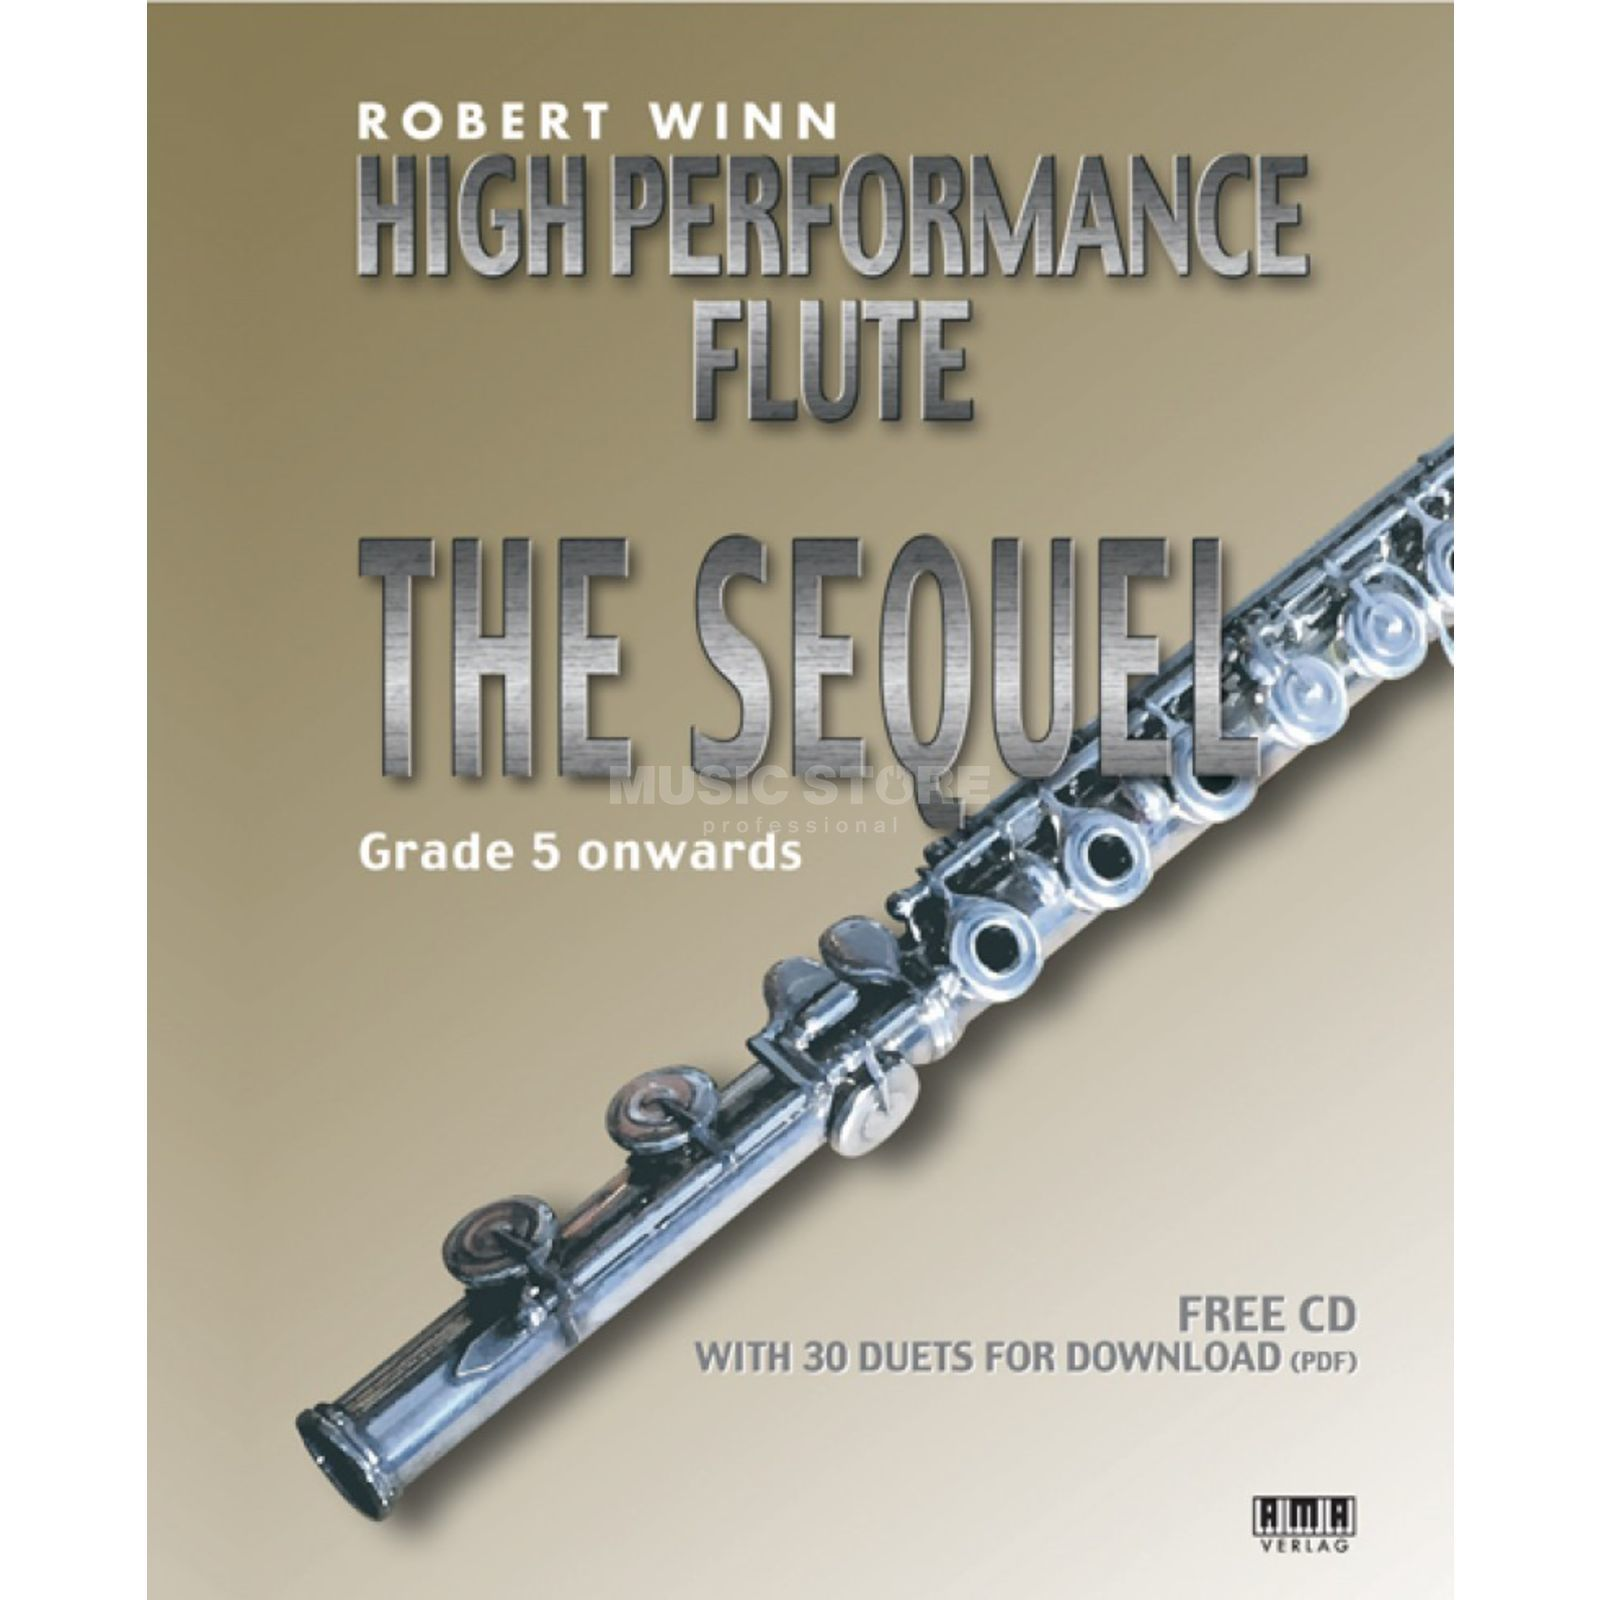 AMA Verlag High Performance Flute - The Sequel Zdjęcie produktu